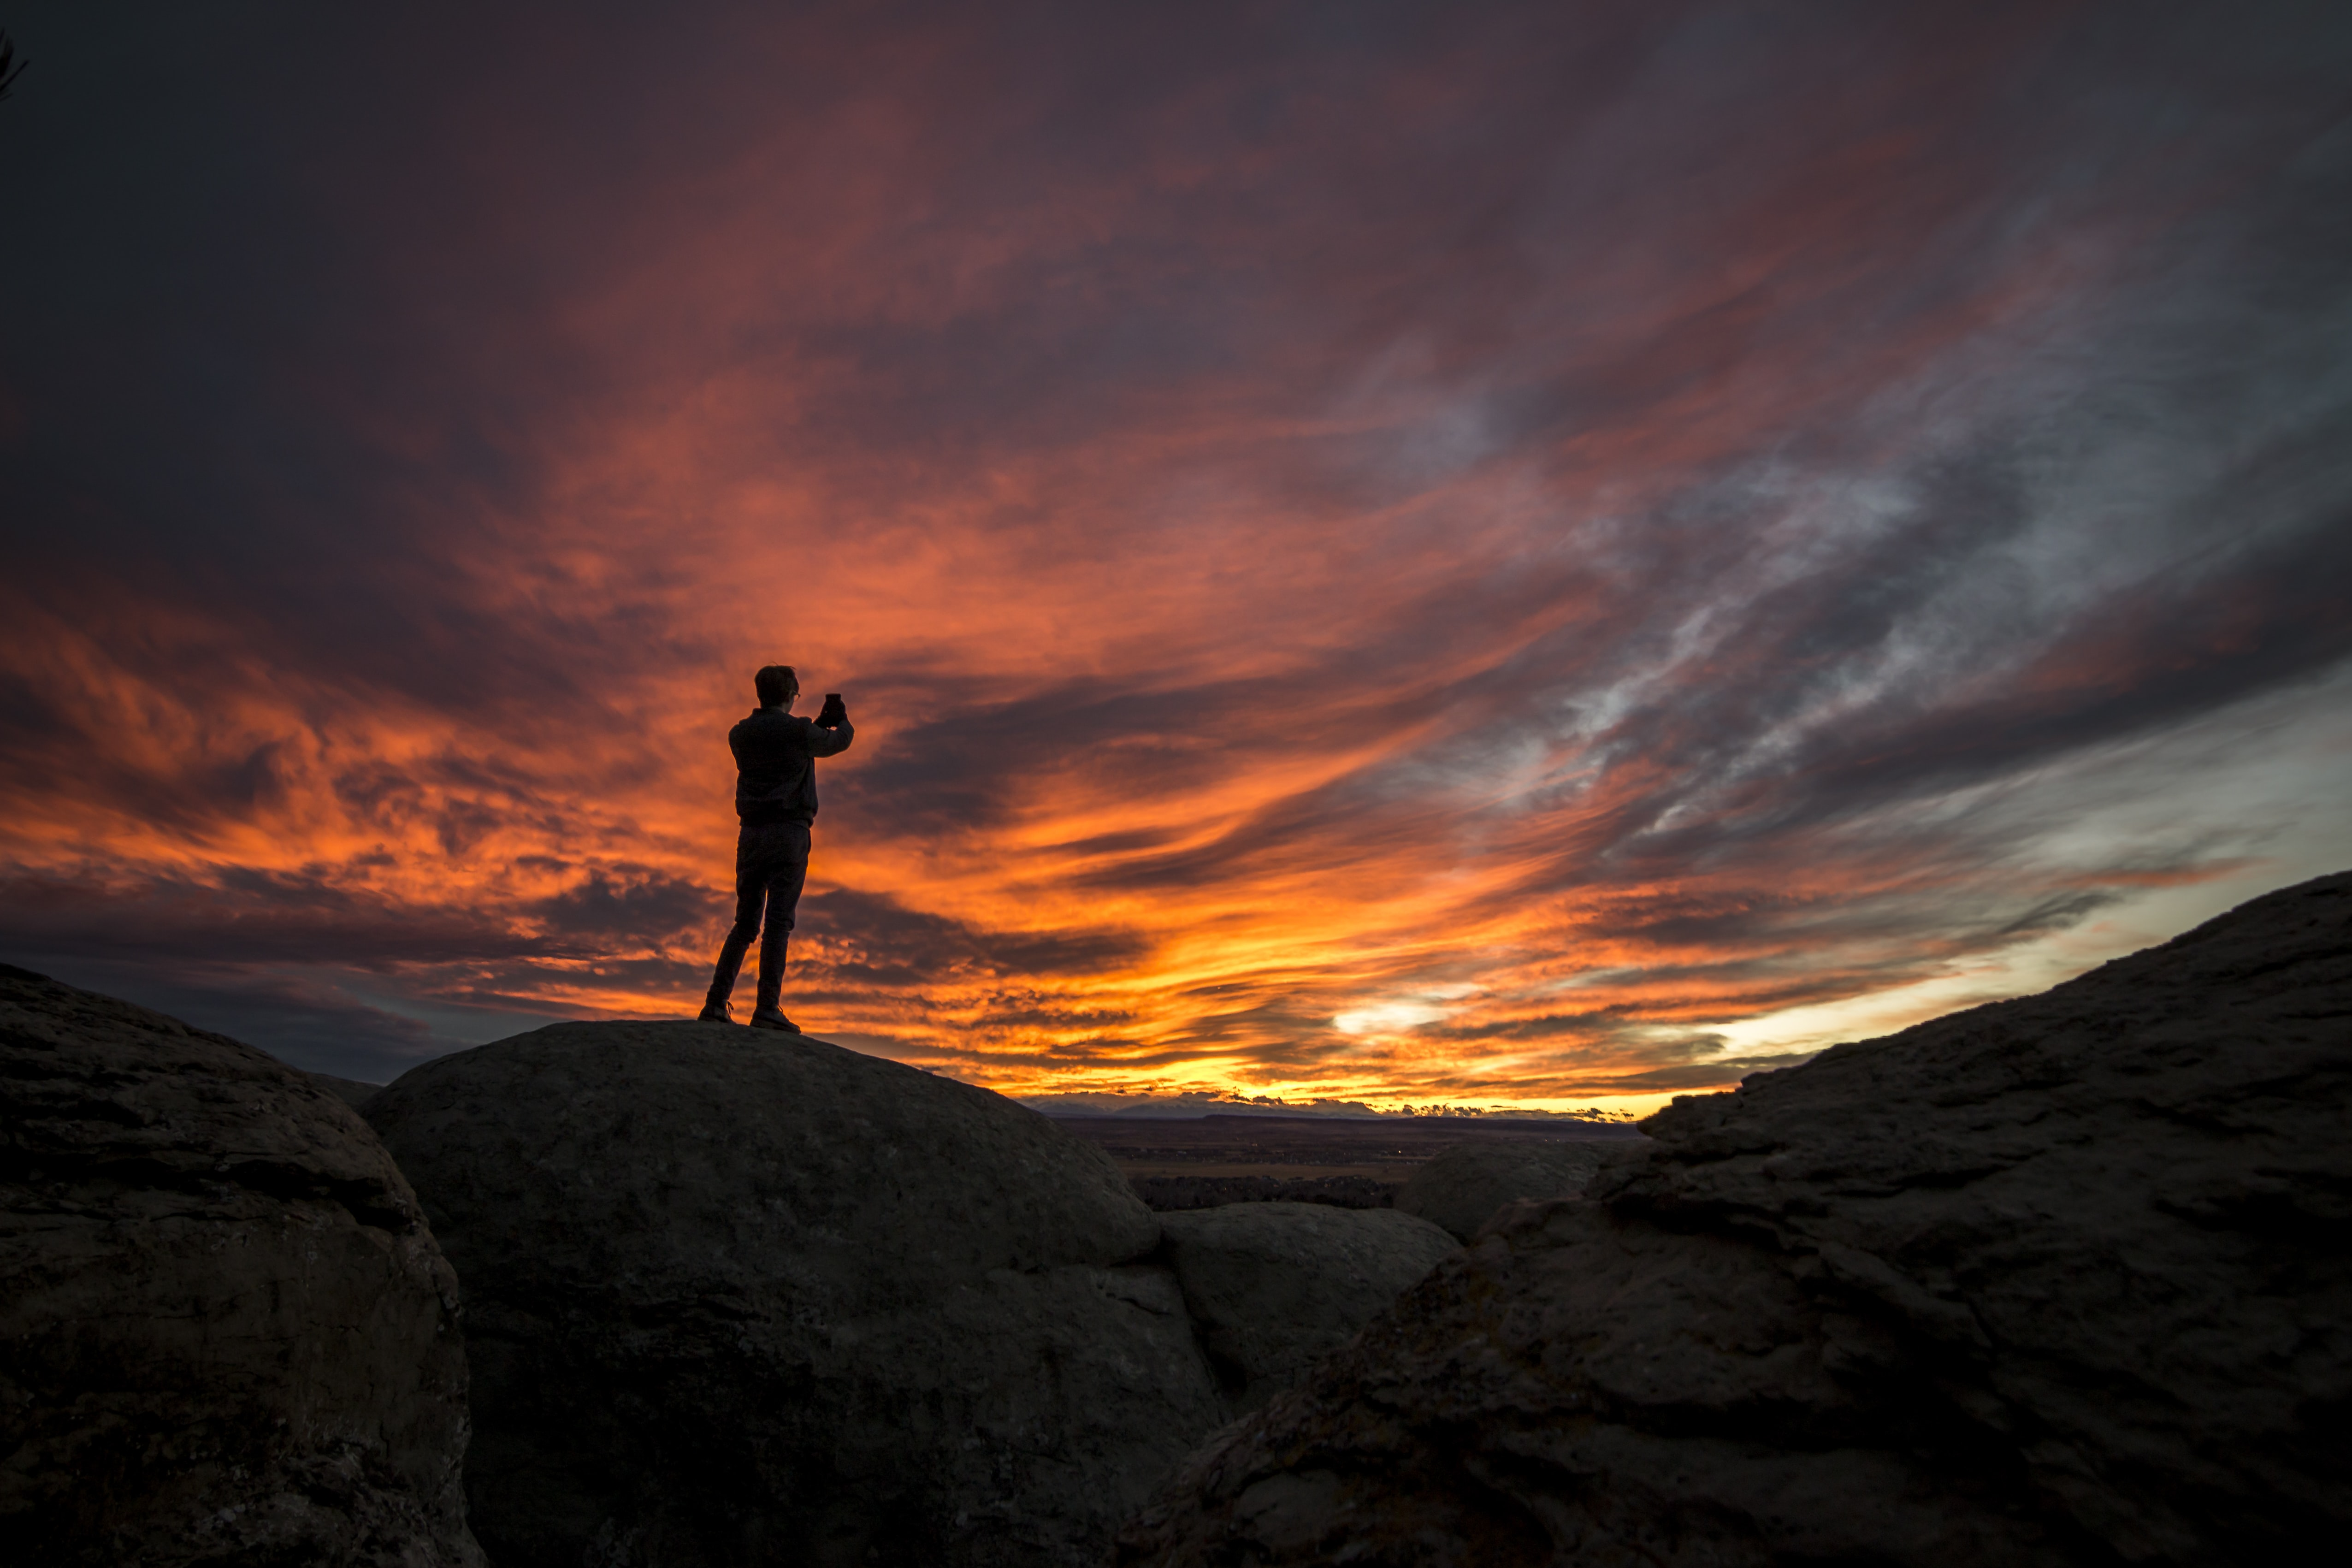 man standing on rocks under cloudy sky